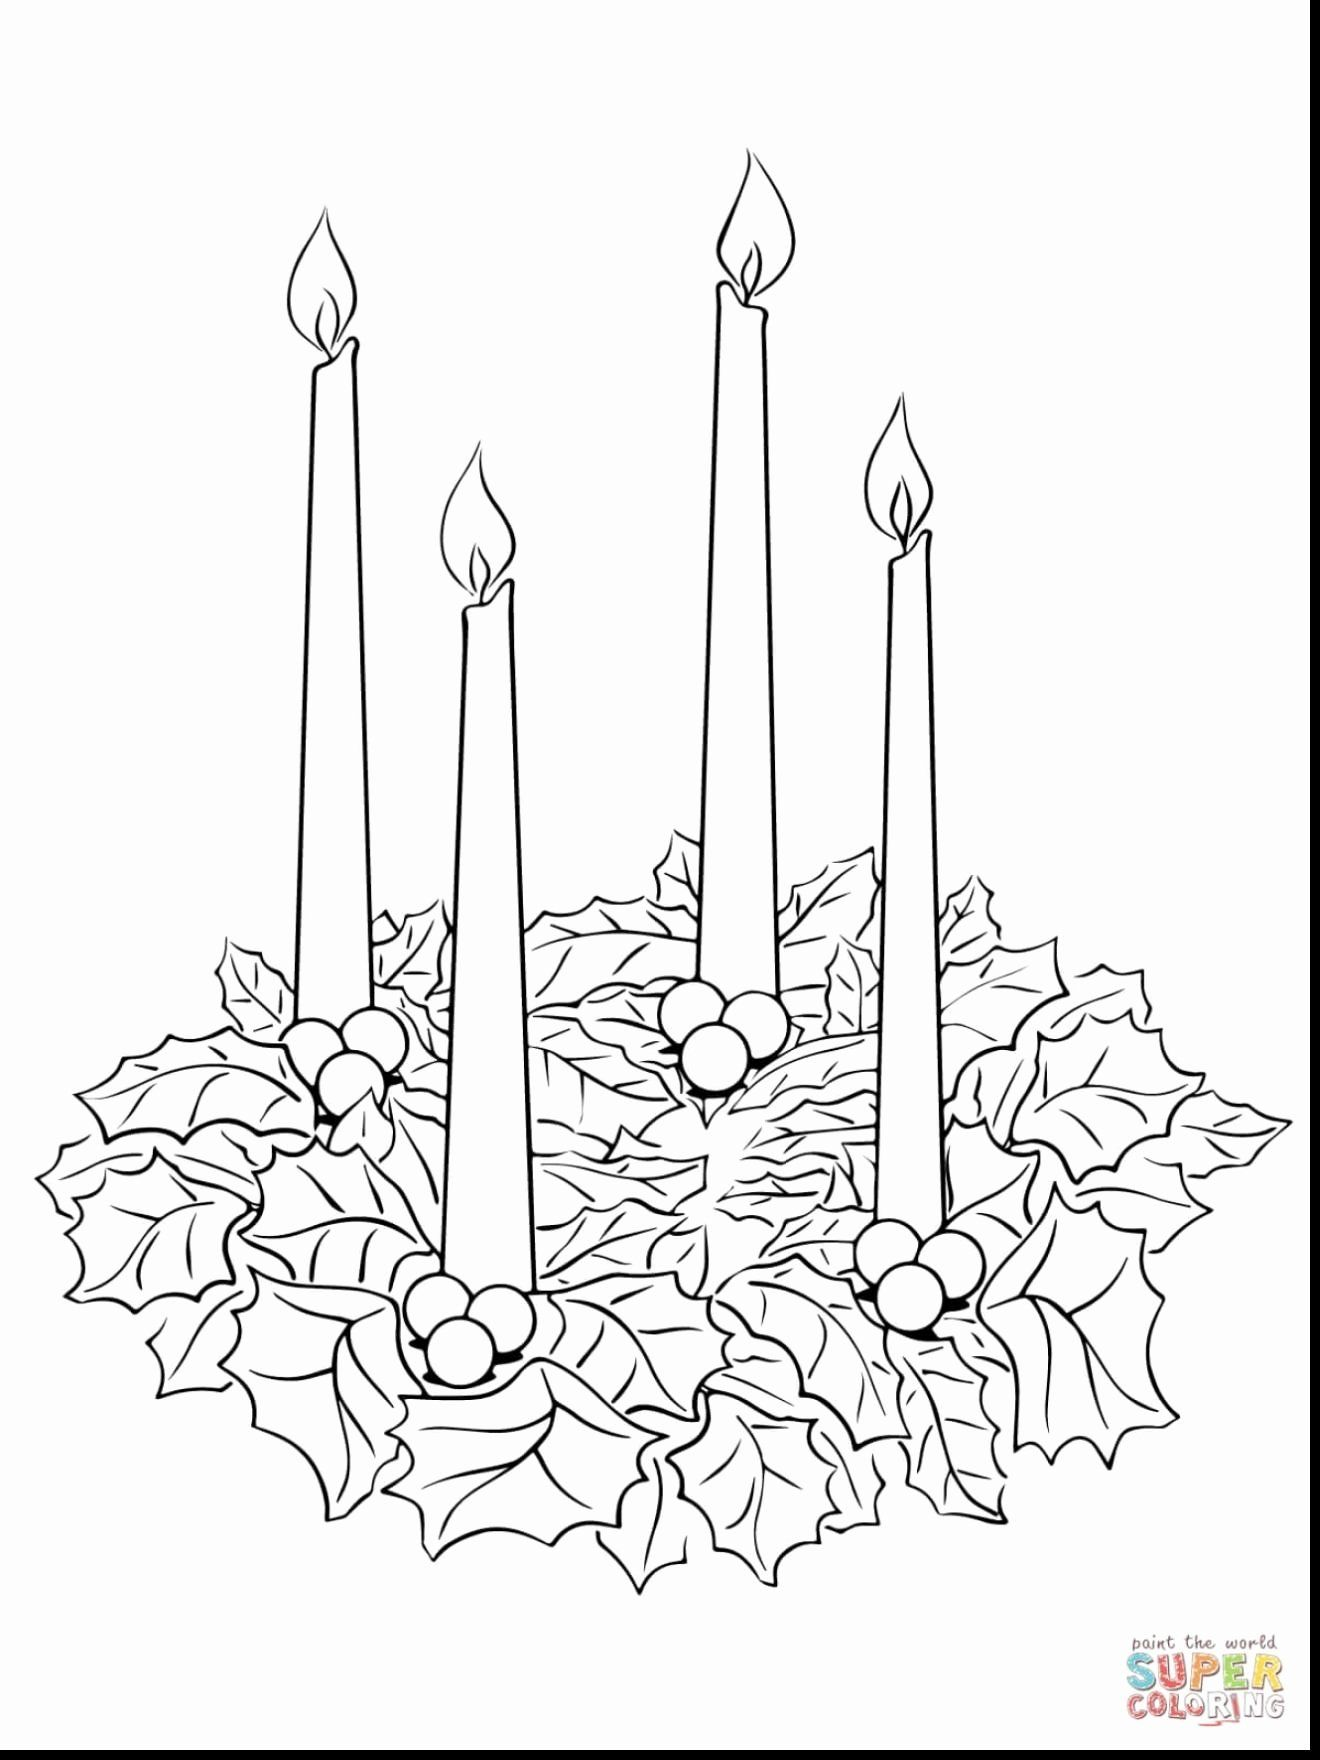 Advent Wreath Coloring Page Catholic Beautiful Beautiful Christmas Candles Coloring Page Super Colori Advent Coloring Christmas Coloring Pages Wreath Printable